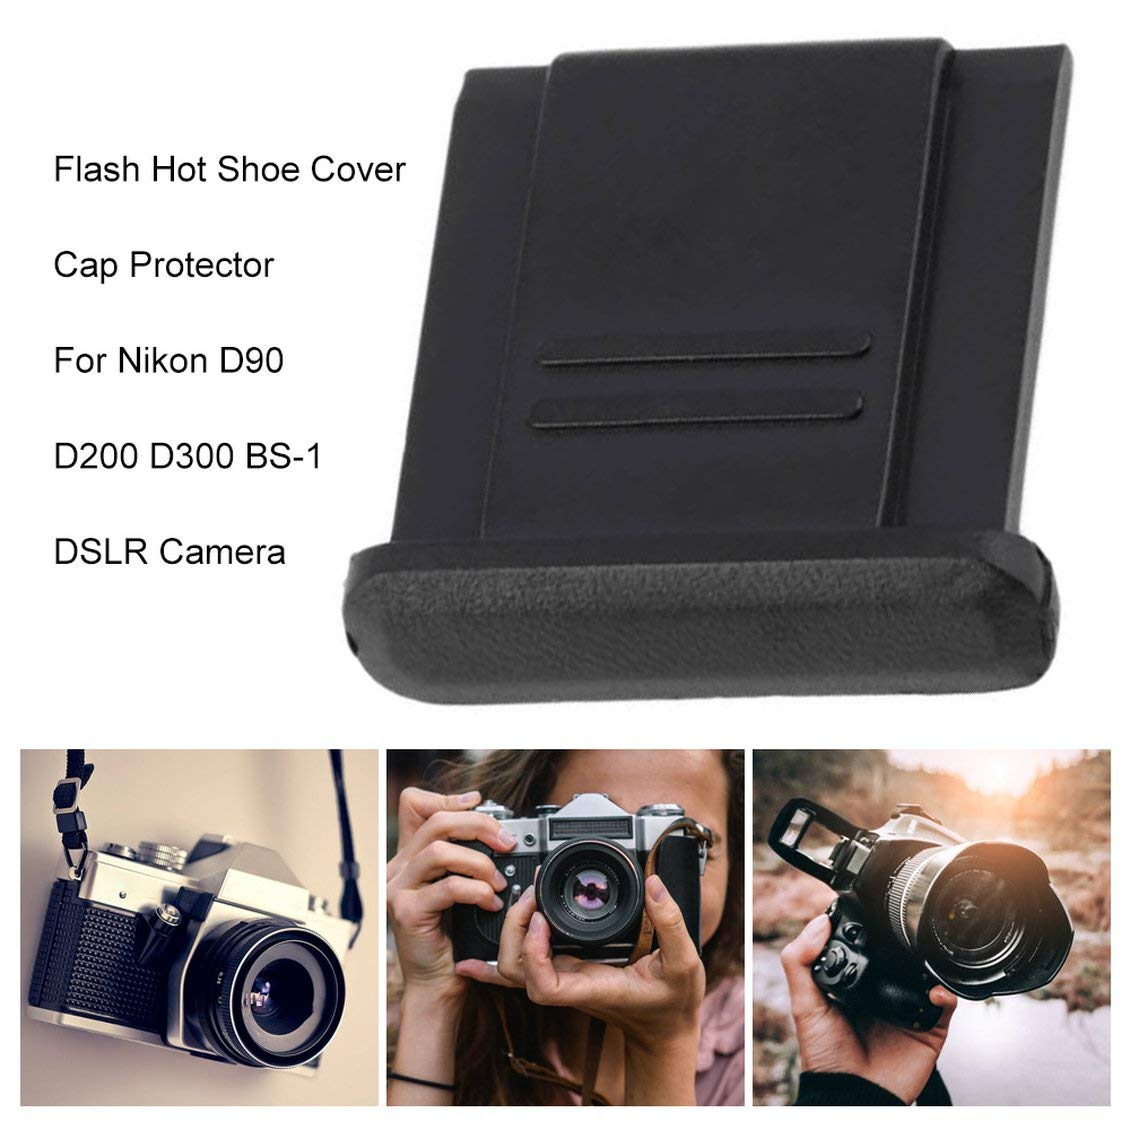 Flash Hot Shoe Cover Cap Protector para Nikon D90 D200 D300 BS-1 ...